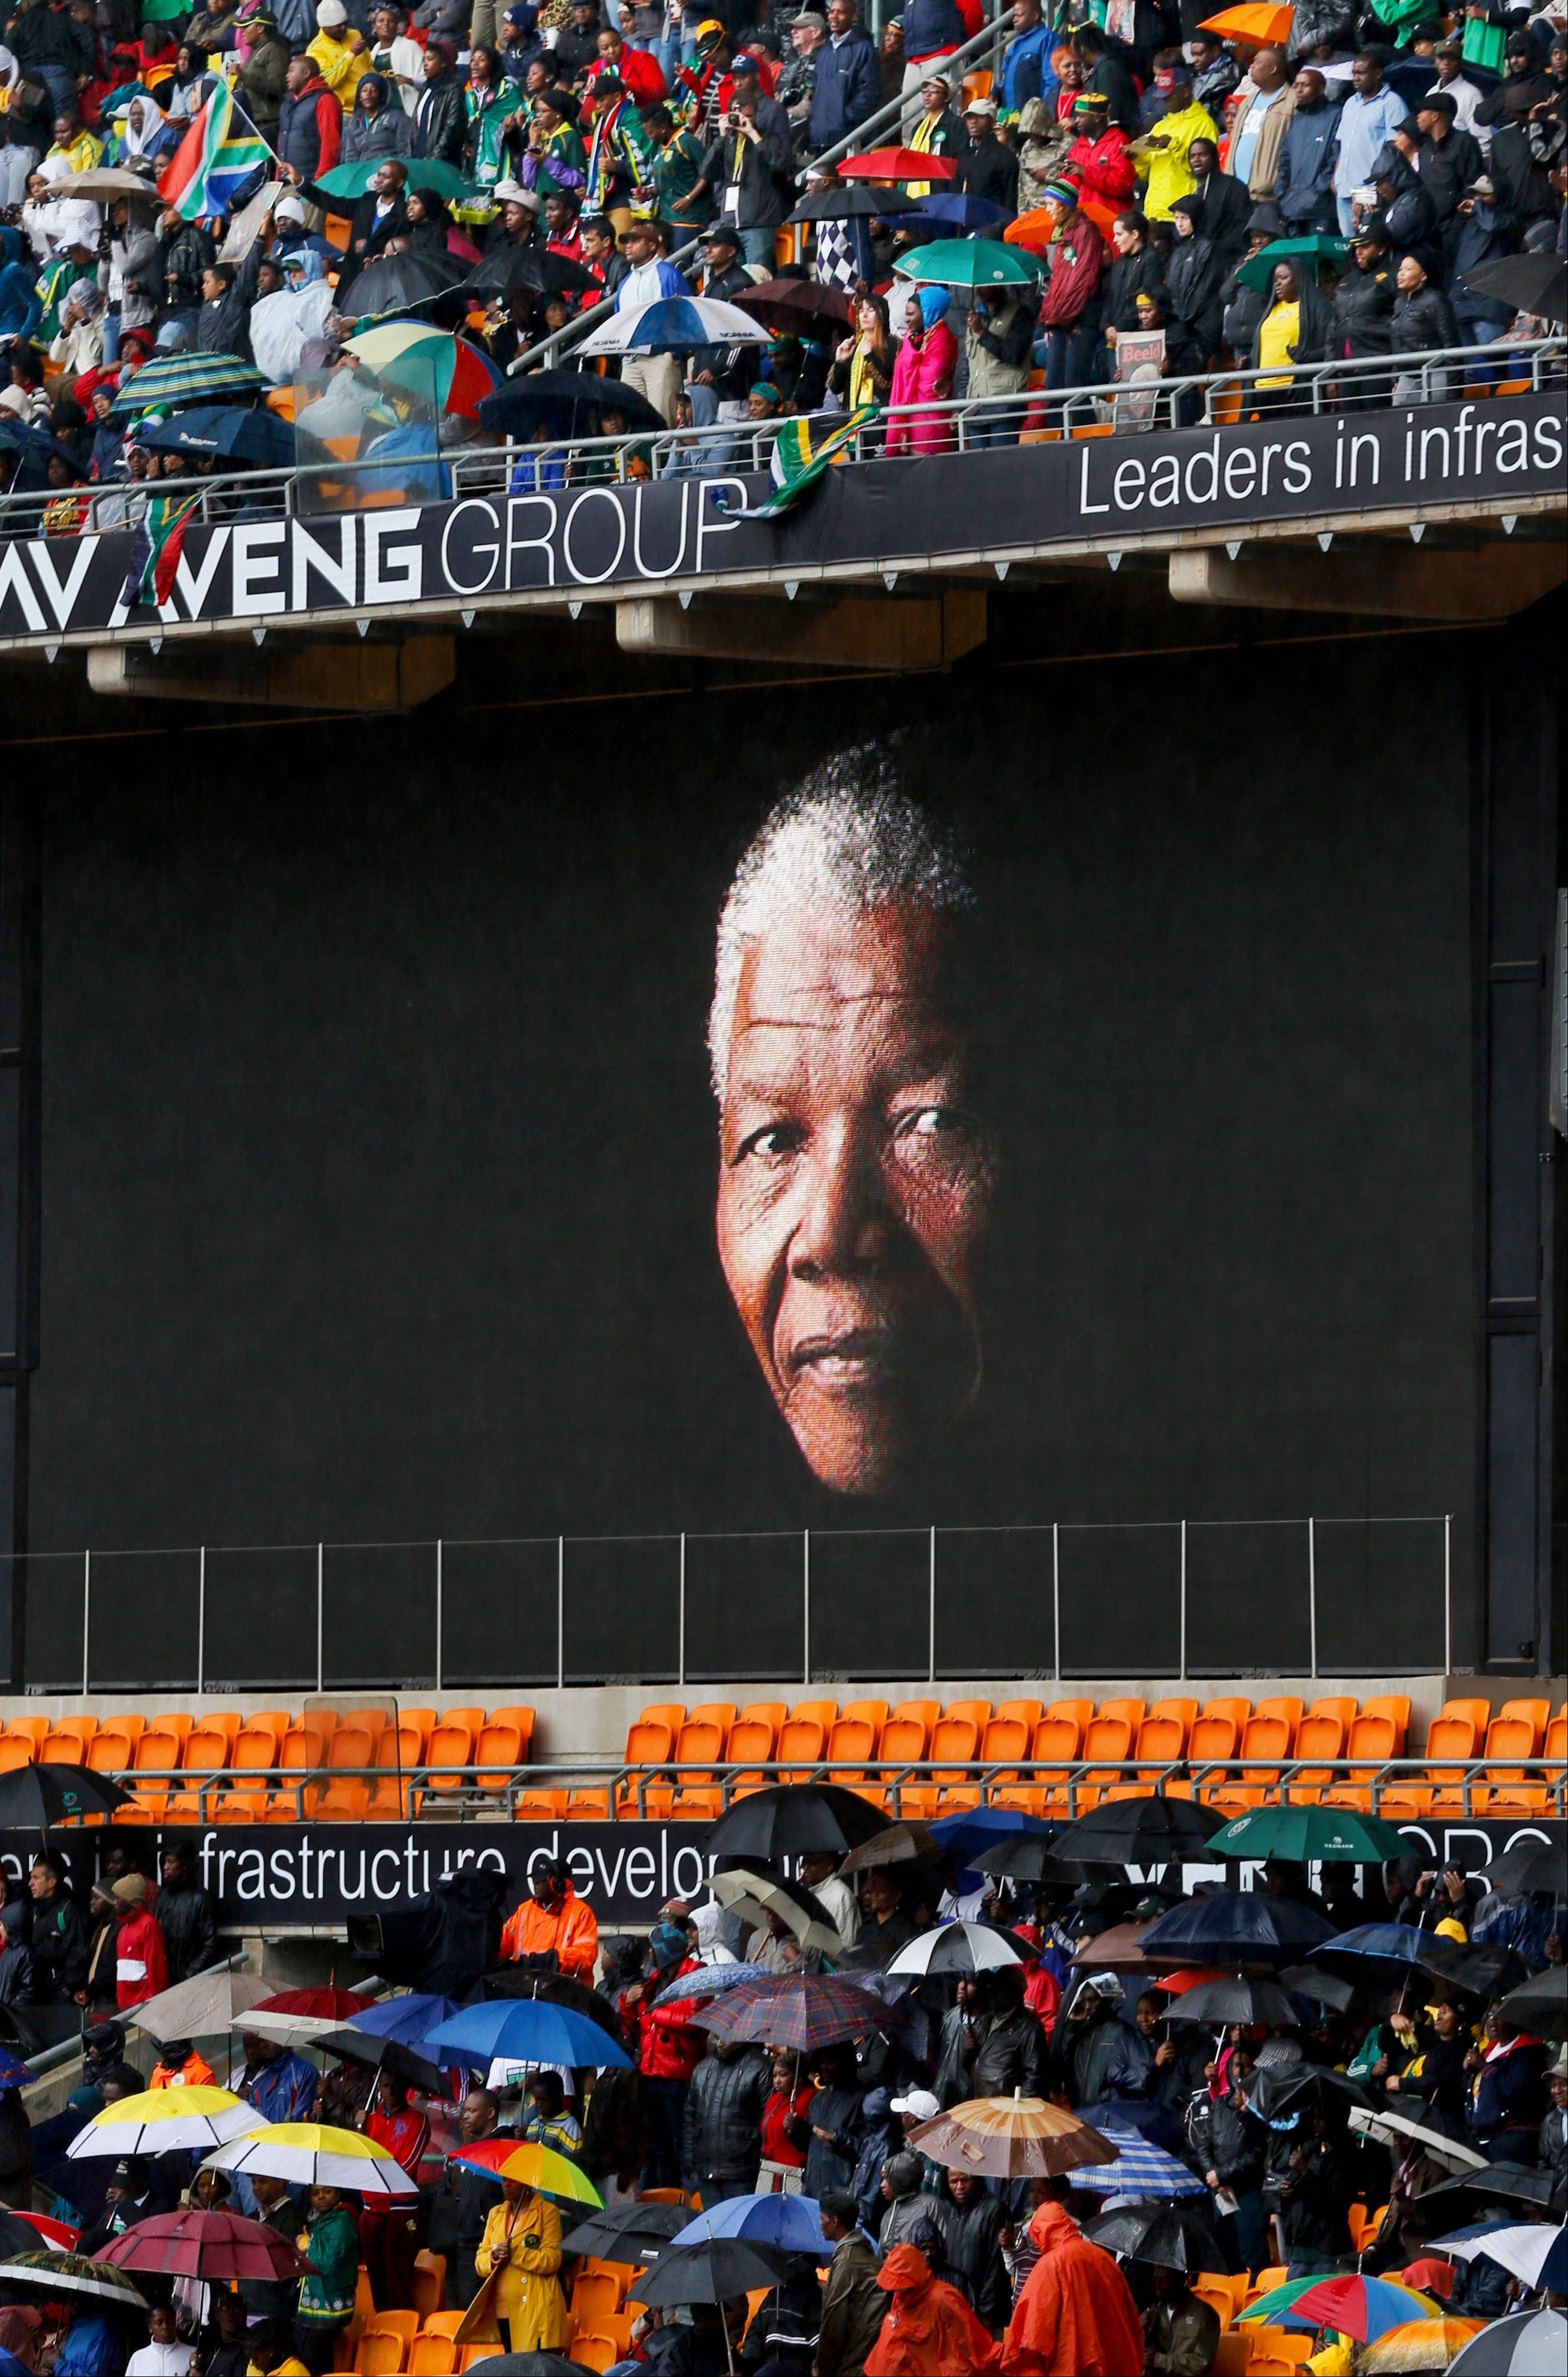 The face of Nelson Mandela is shown on a large billboard in the stands at the memorial service for former South African President Nelson Mandela at the FNB stadium in Johannesburg, South Africa Tuesday, Dec. 10, 2013.